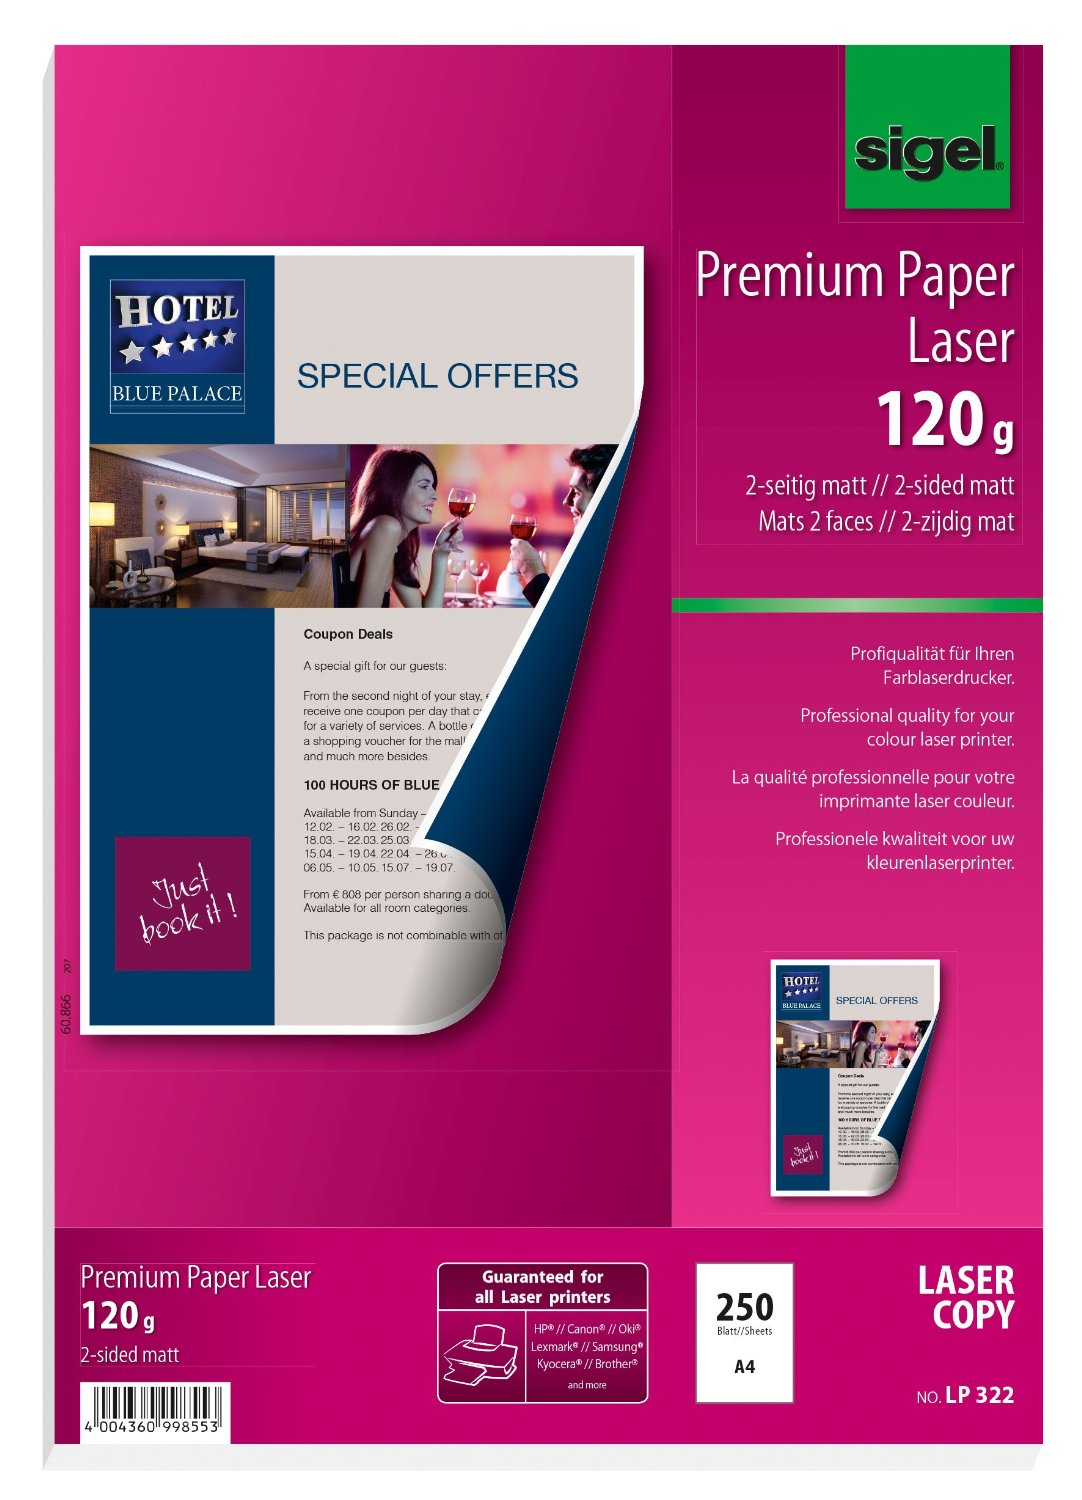 Sigel LP322 Premium Quality Paper for Colour Laser/Copier, 2-sided matt, 81.1 lbs, A4, 250 sheets